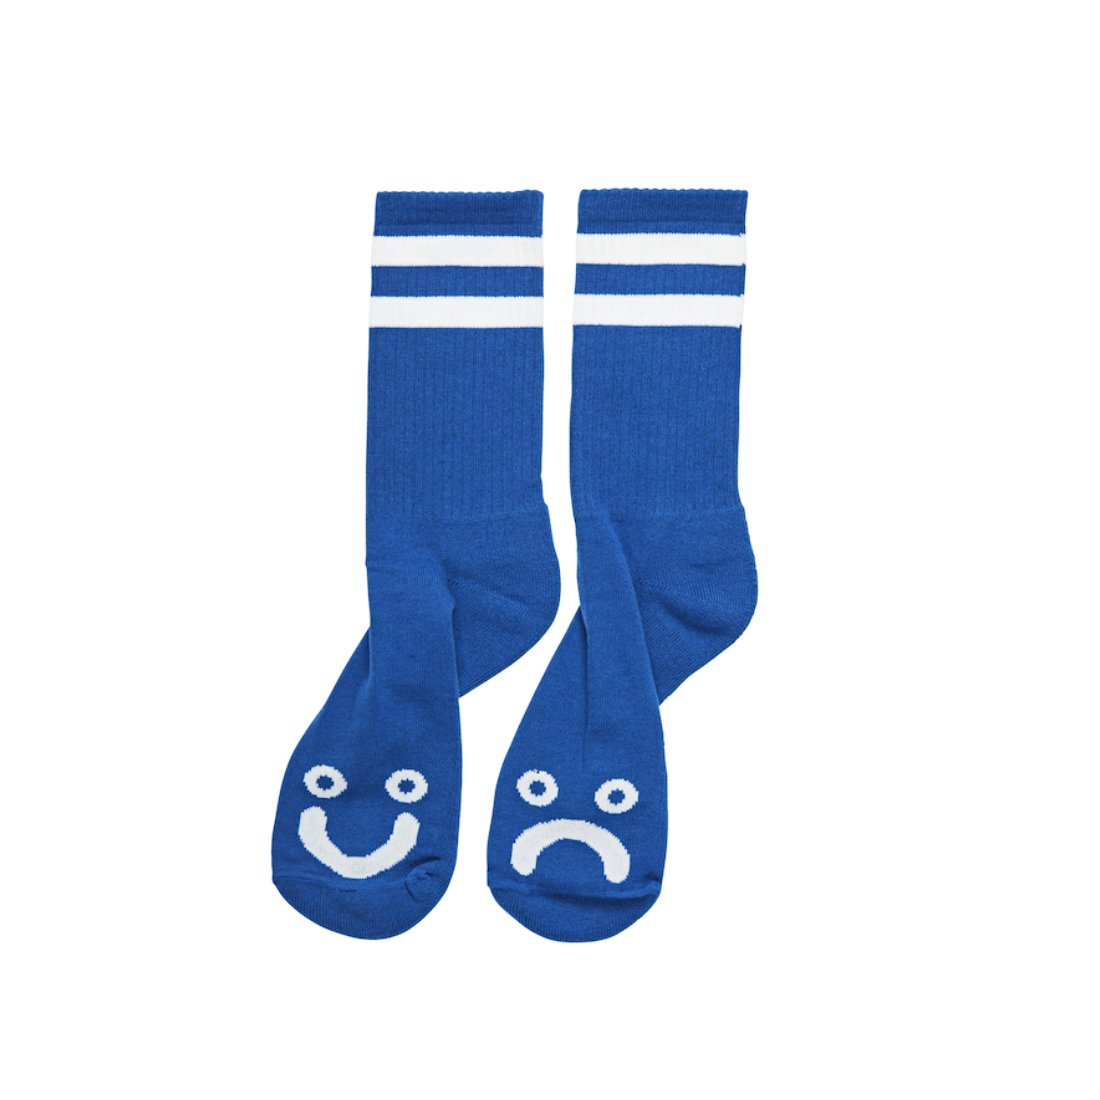 【POLAR SKATE CO.】Happy sad socks - Blue